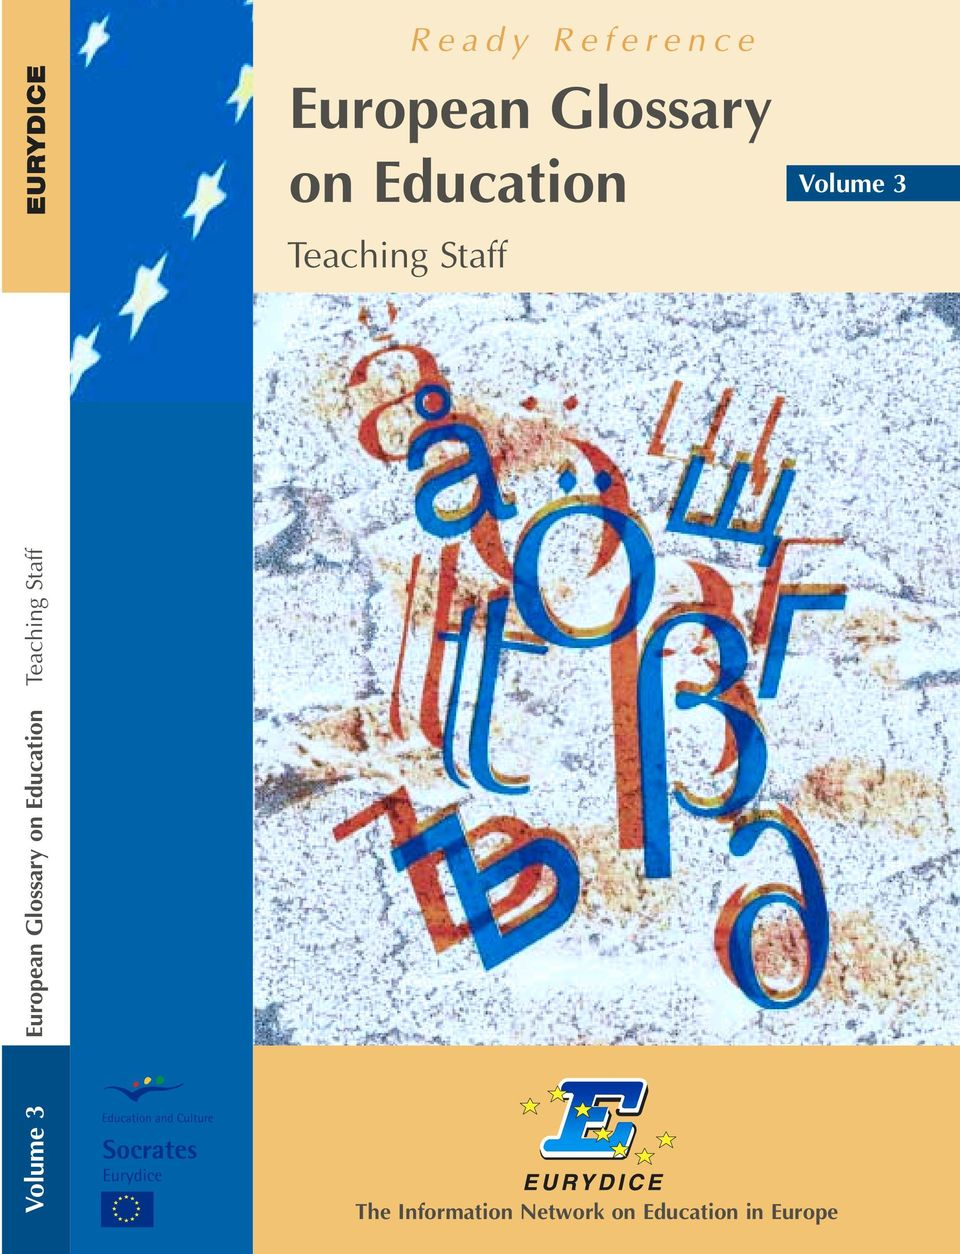 European Glossary on Education Teaching